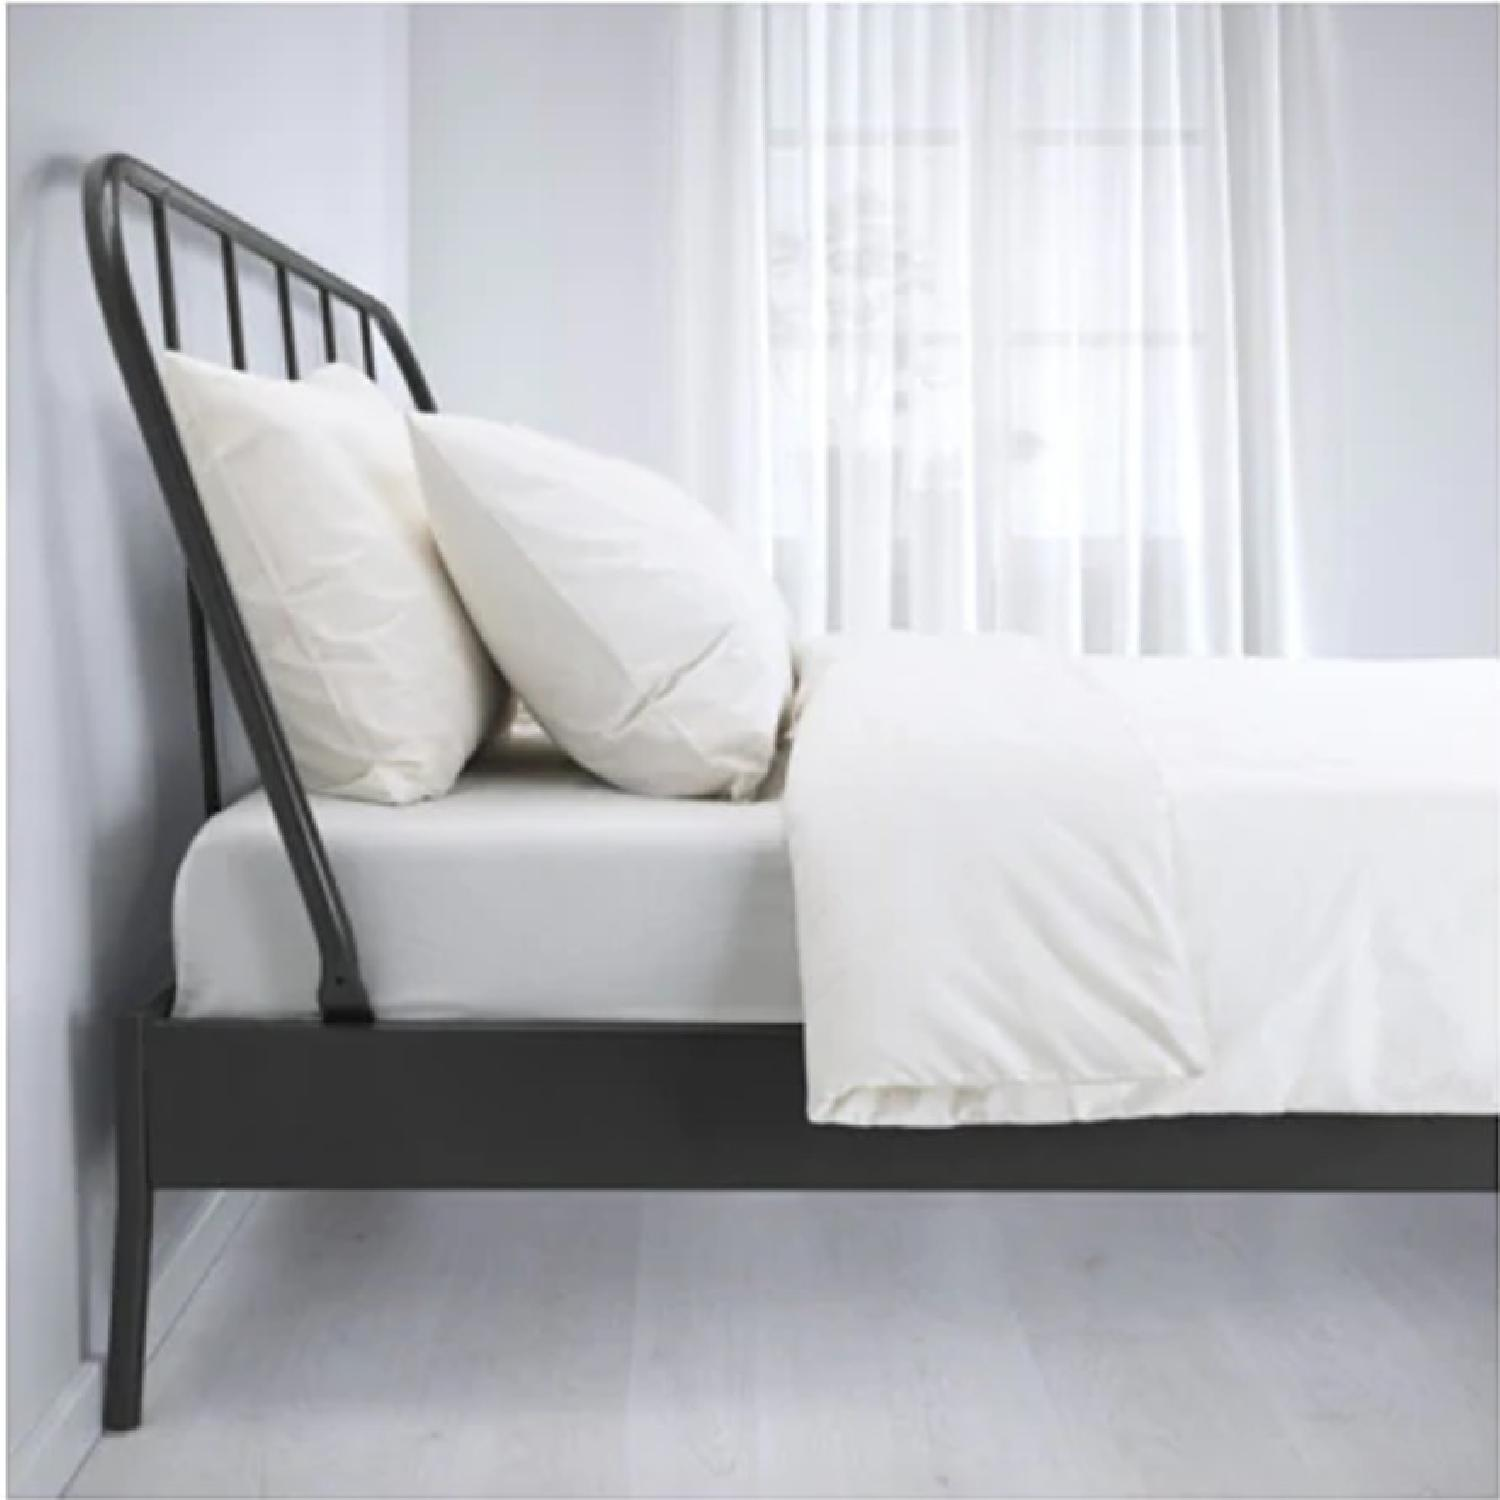 Ikea Queen Size Metal Bed Frame-1